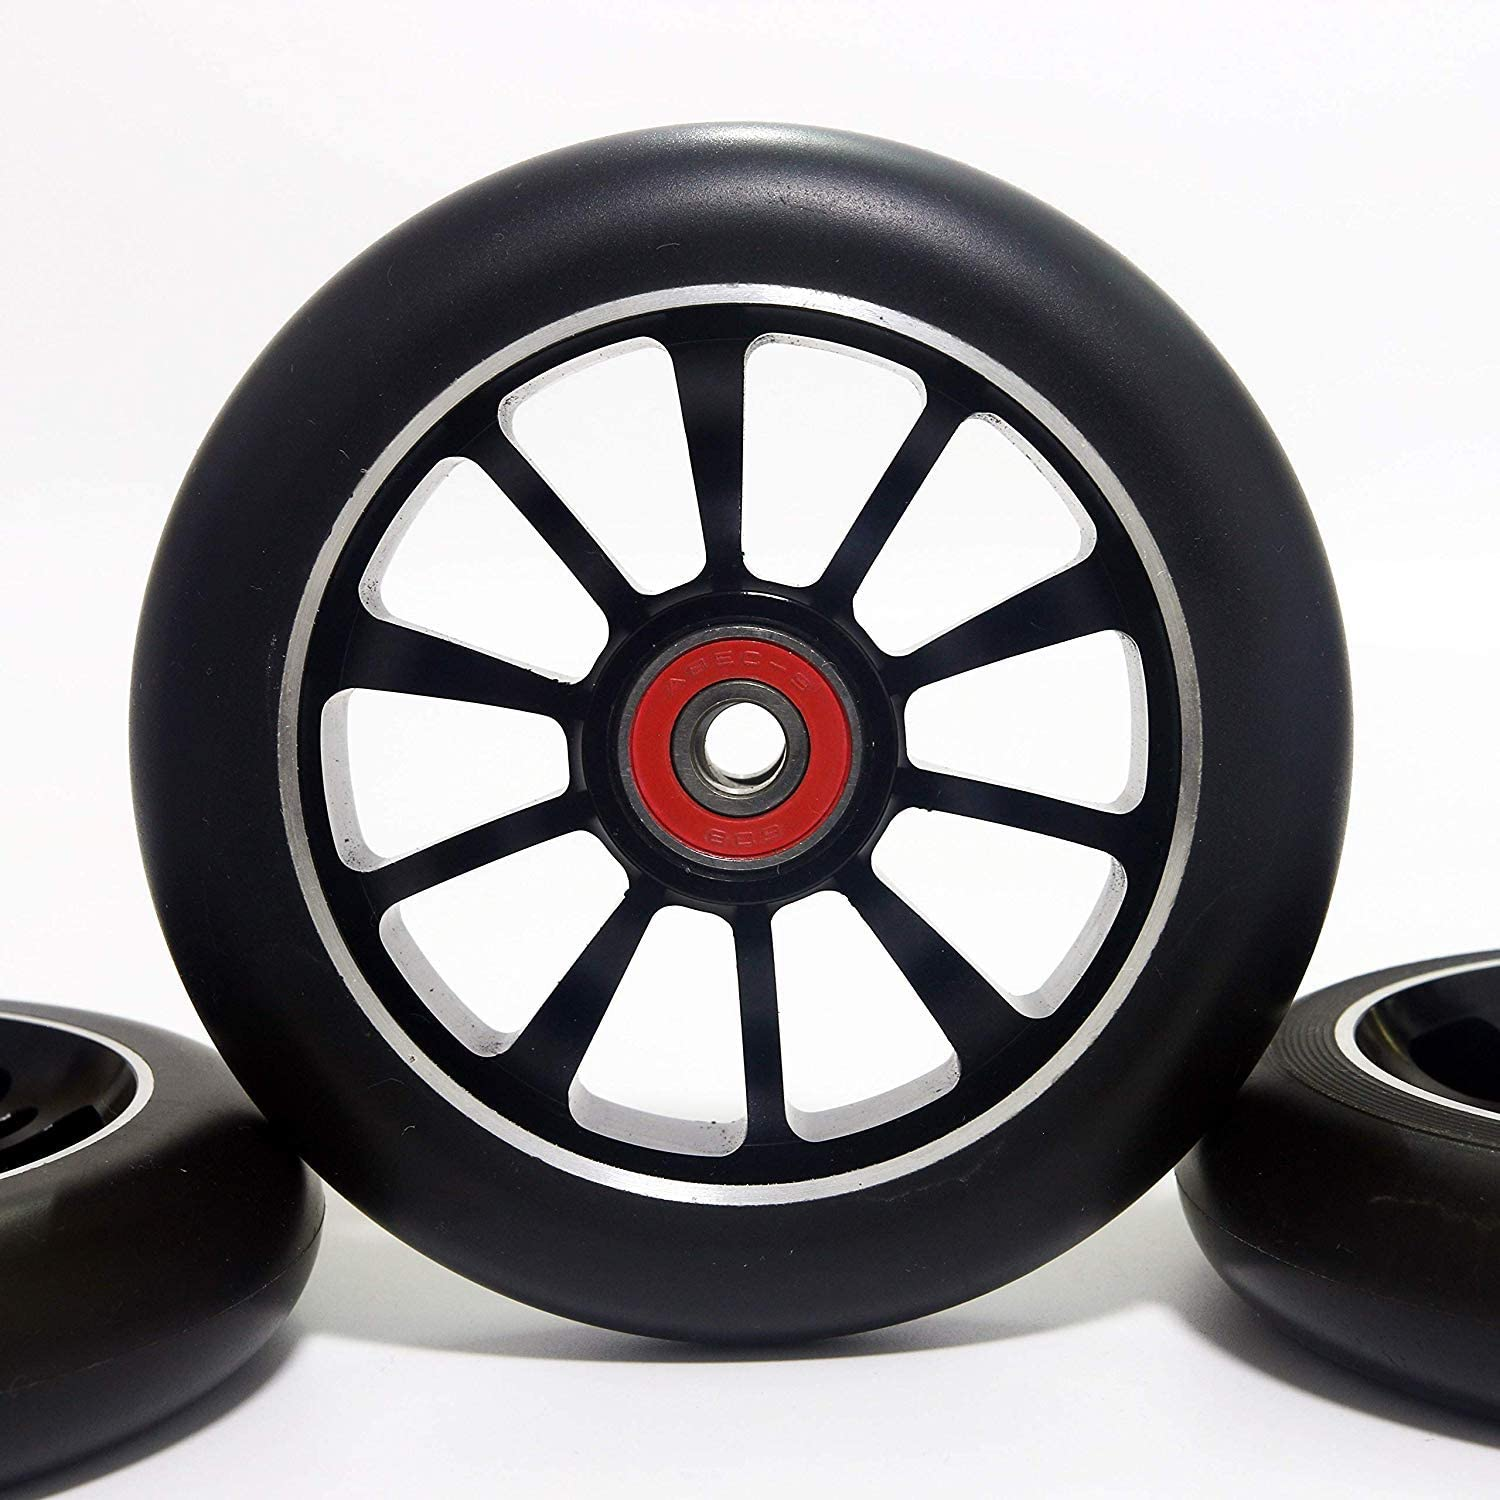 Z-FIRST 1PCS 110mm Pro Stunt Scooter Wheel with ABEC 9 Bearings for MGP/Razor/Lucky/Envy/Vokul Scooter Replacement Wheels